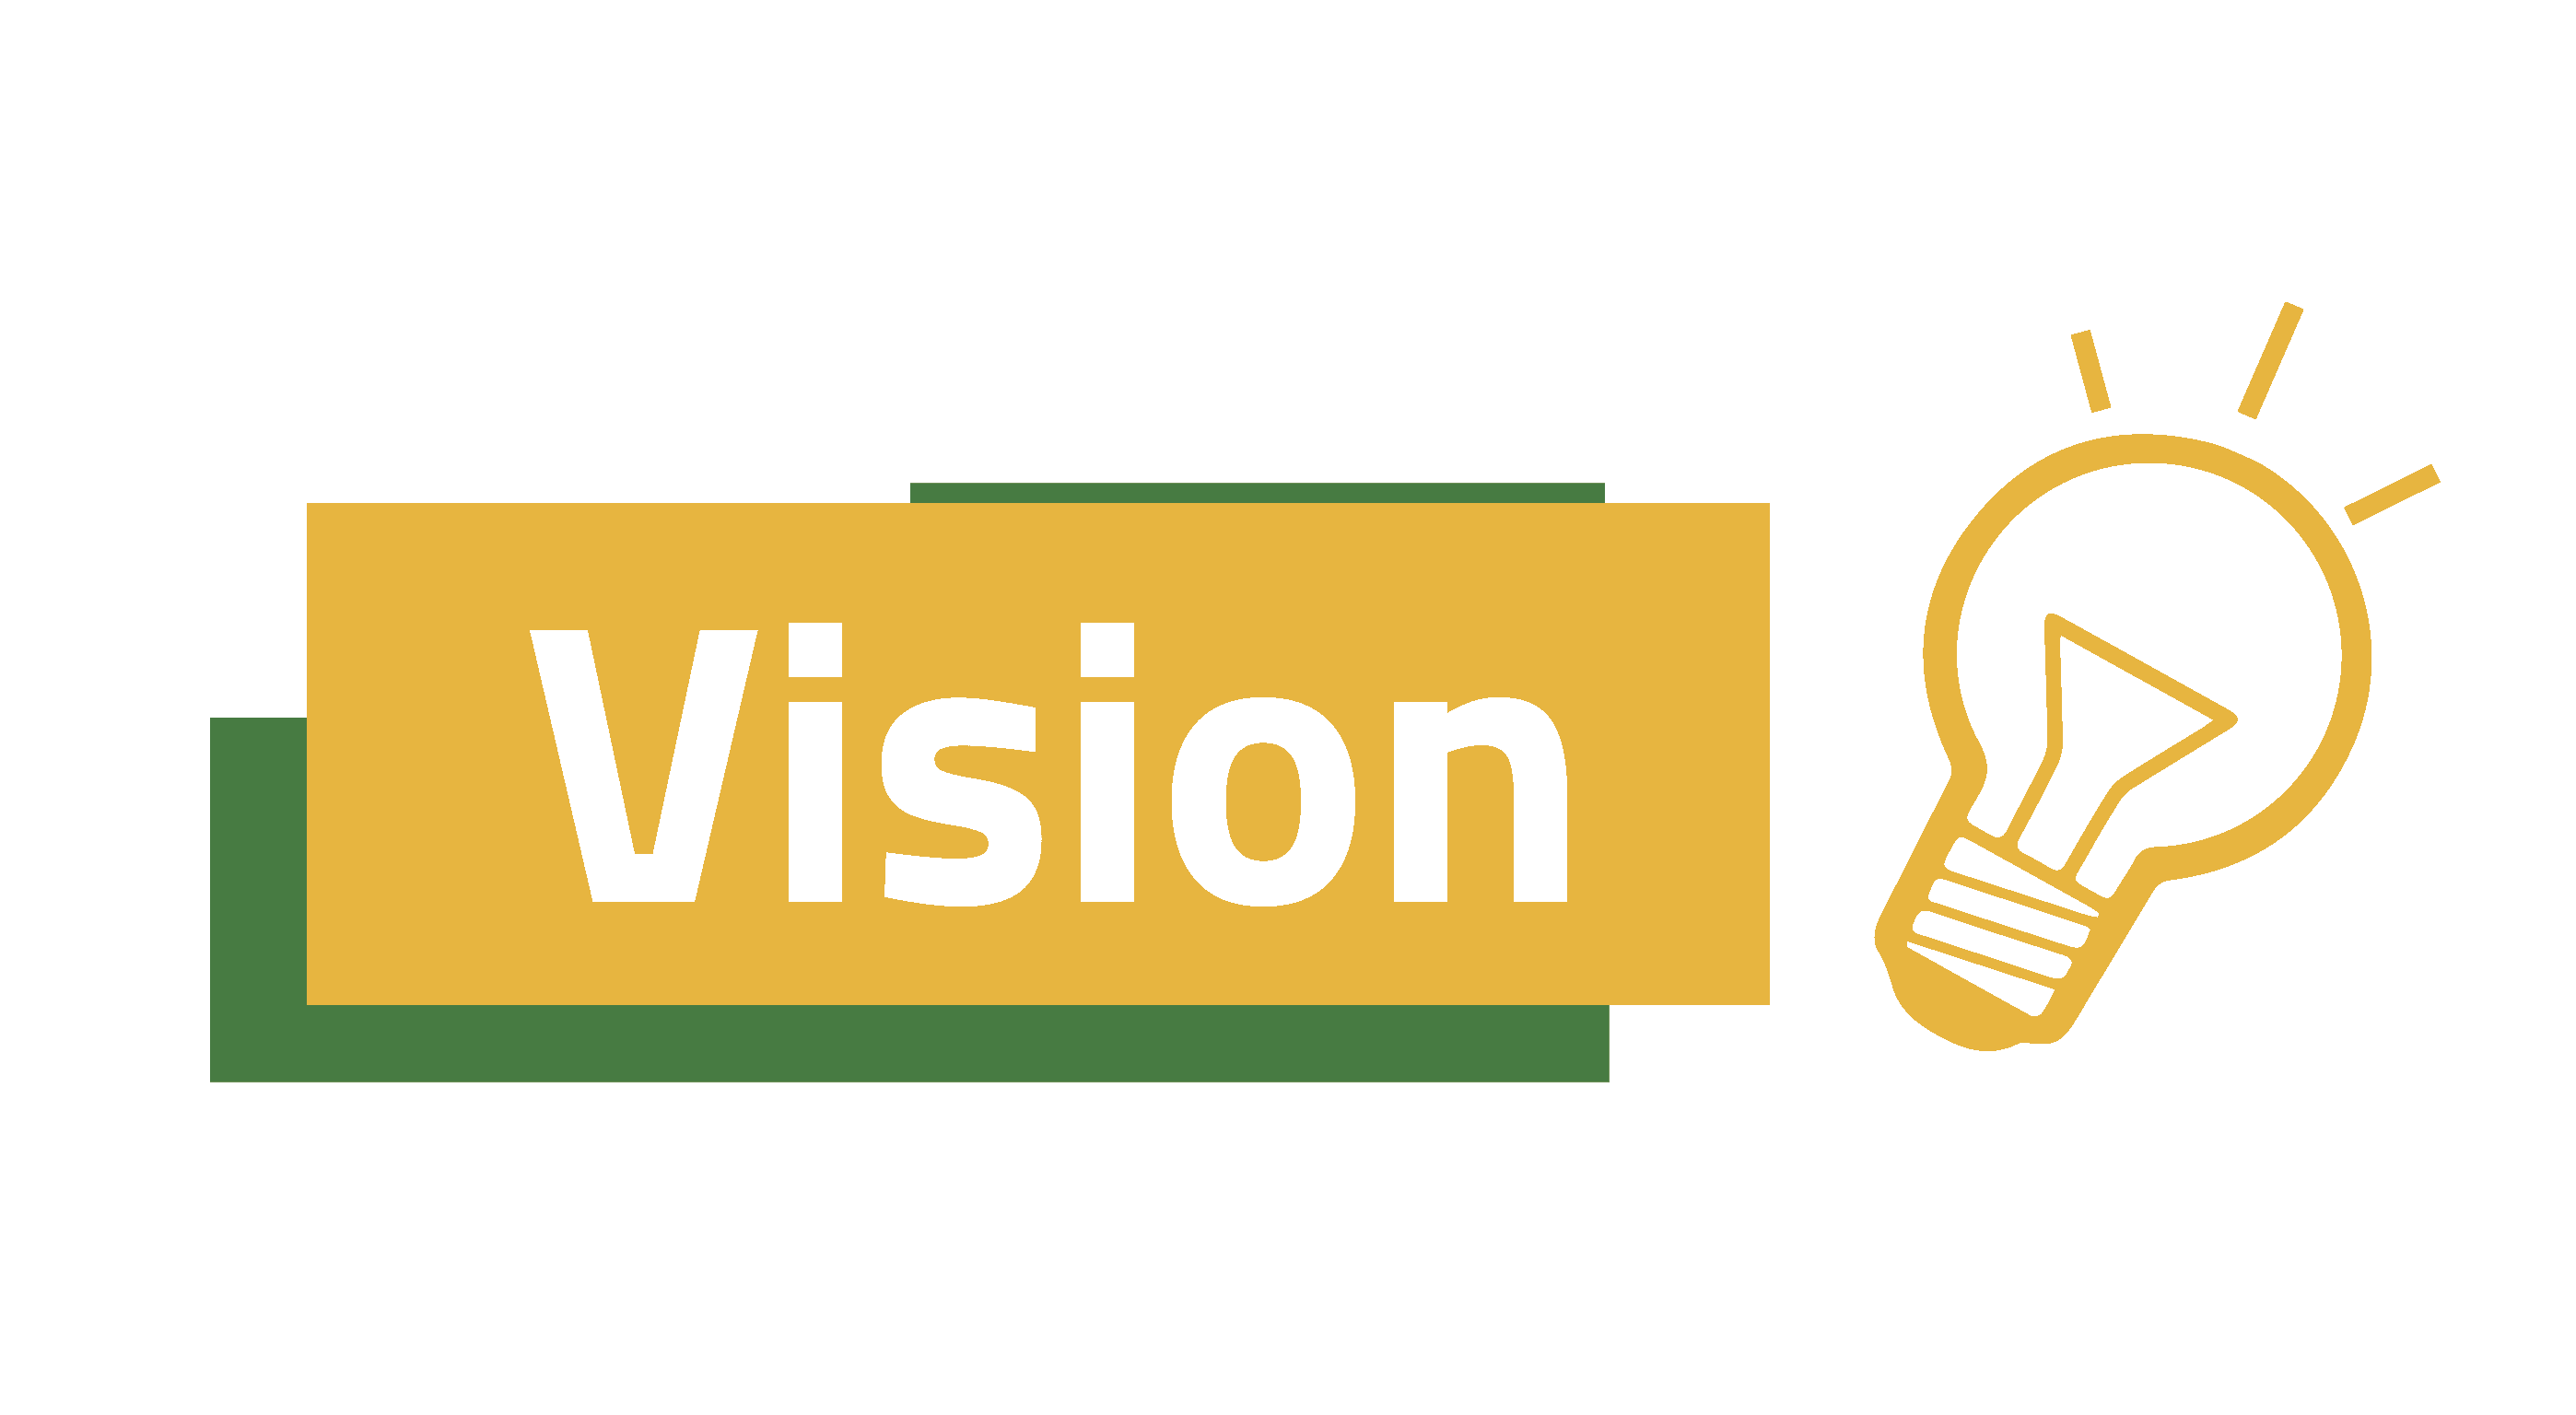 Vision 1 - About us